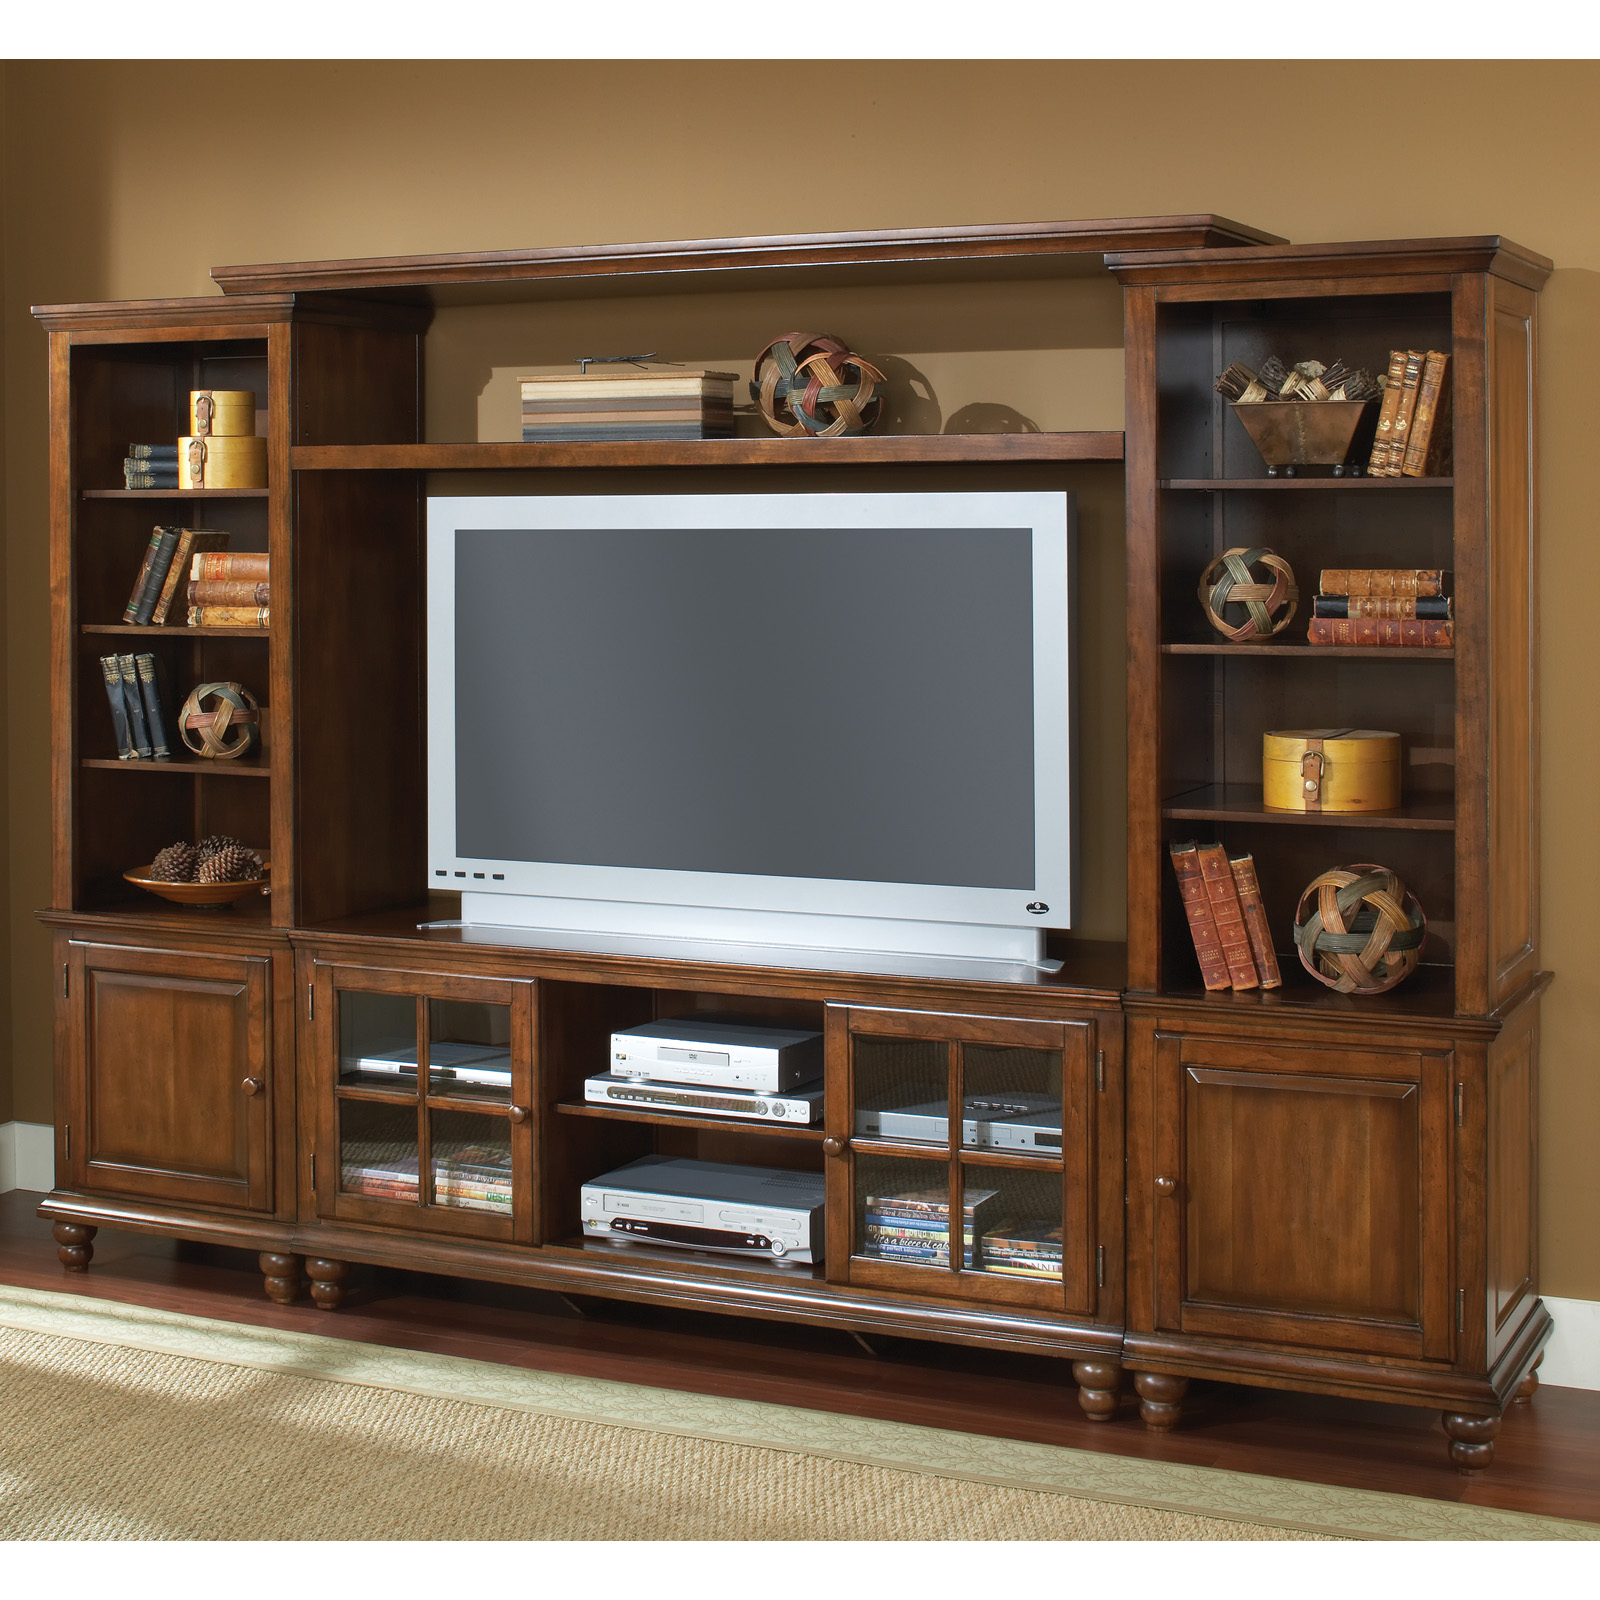 Progressive Furniture Dilworth Entertainment Center